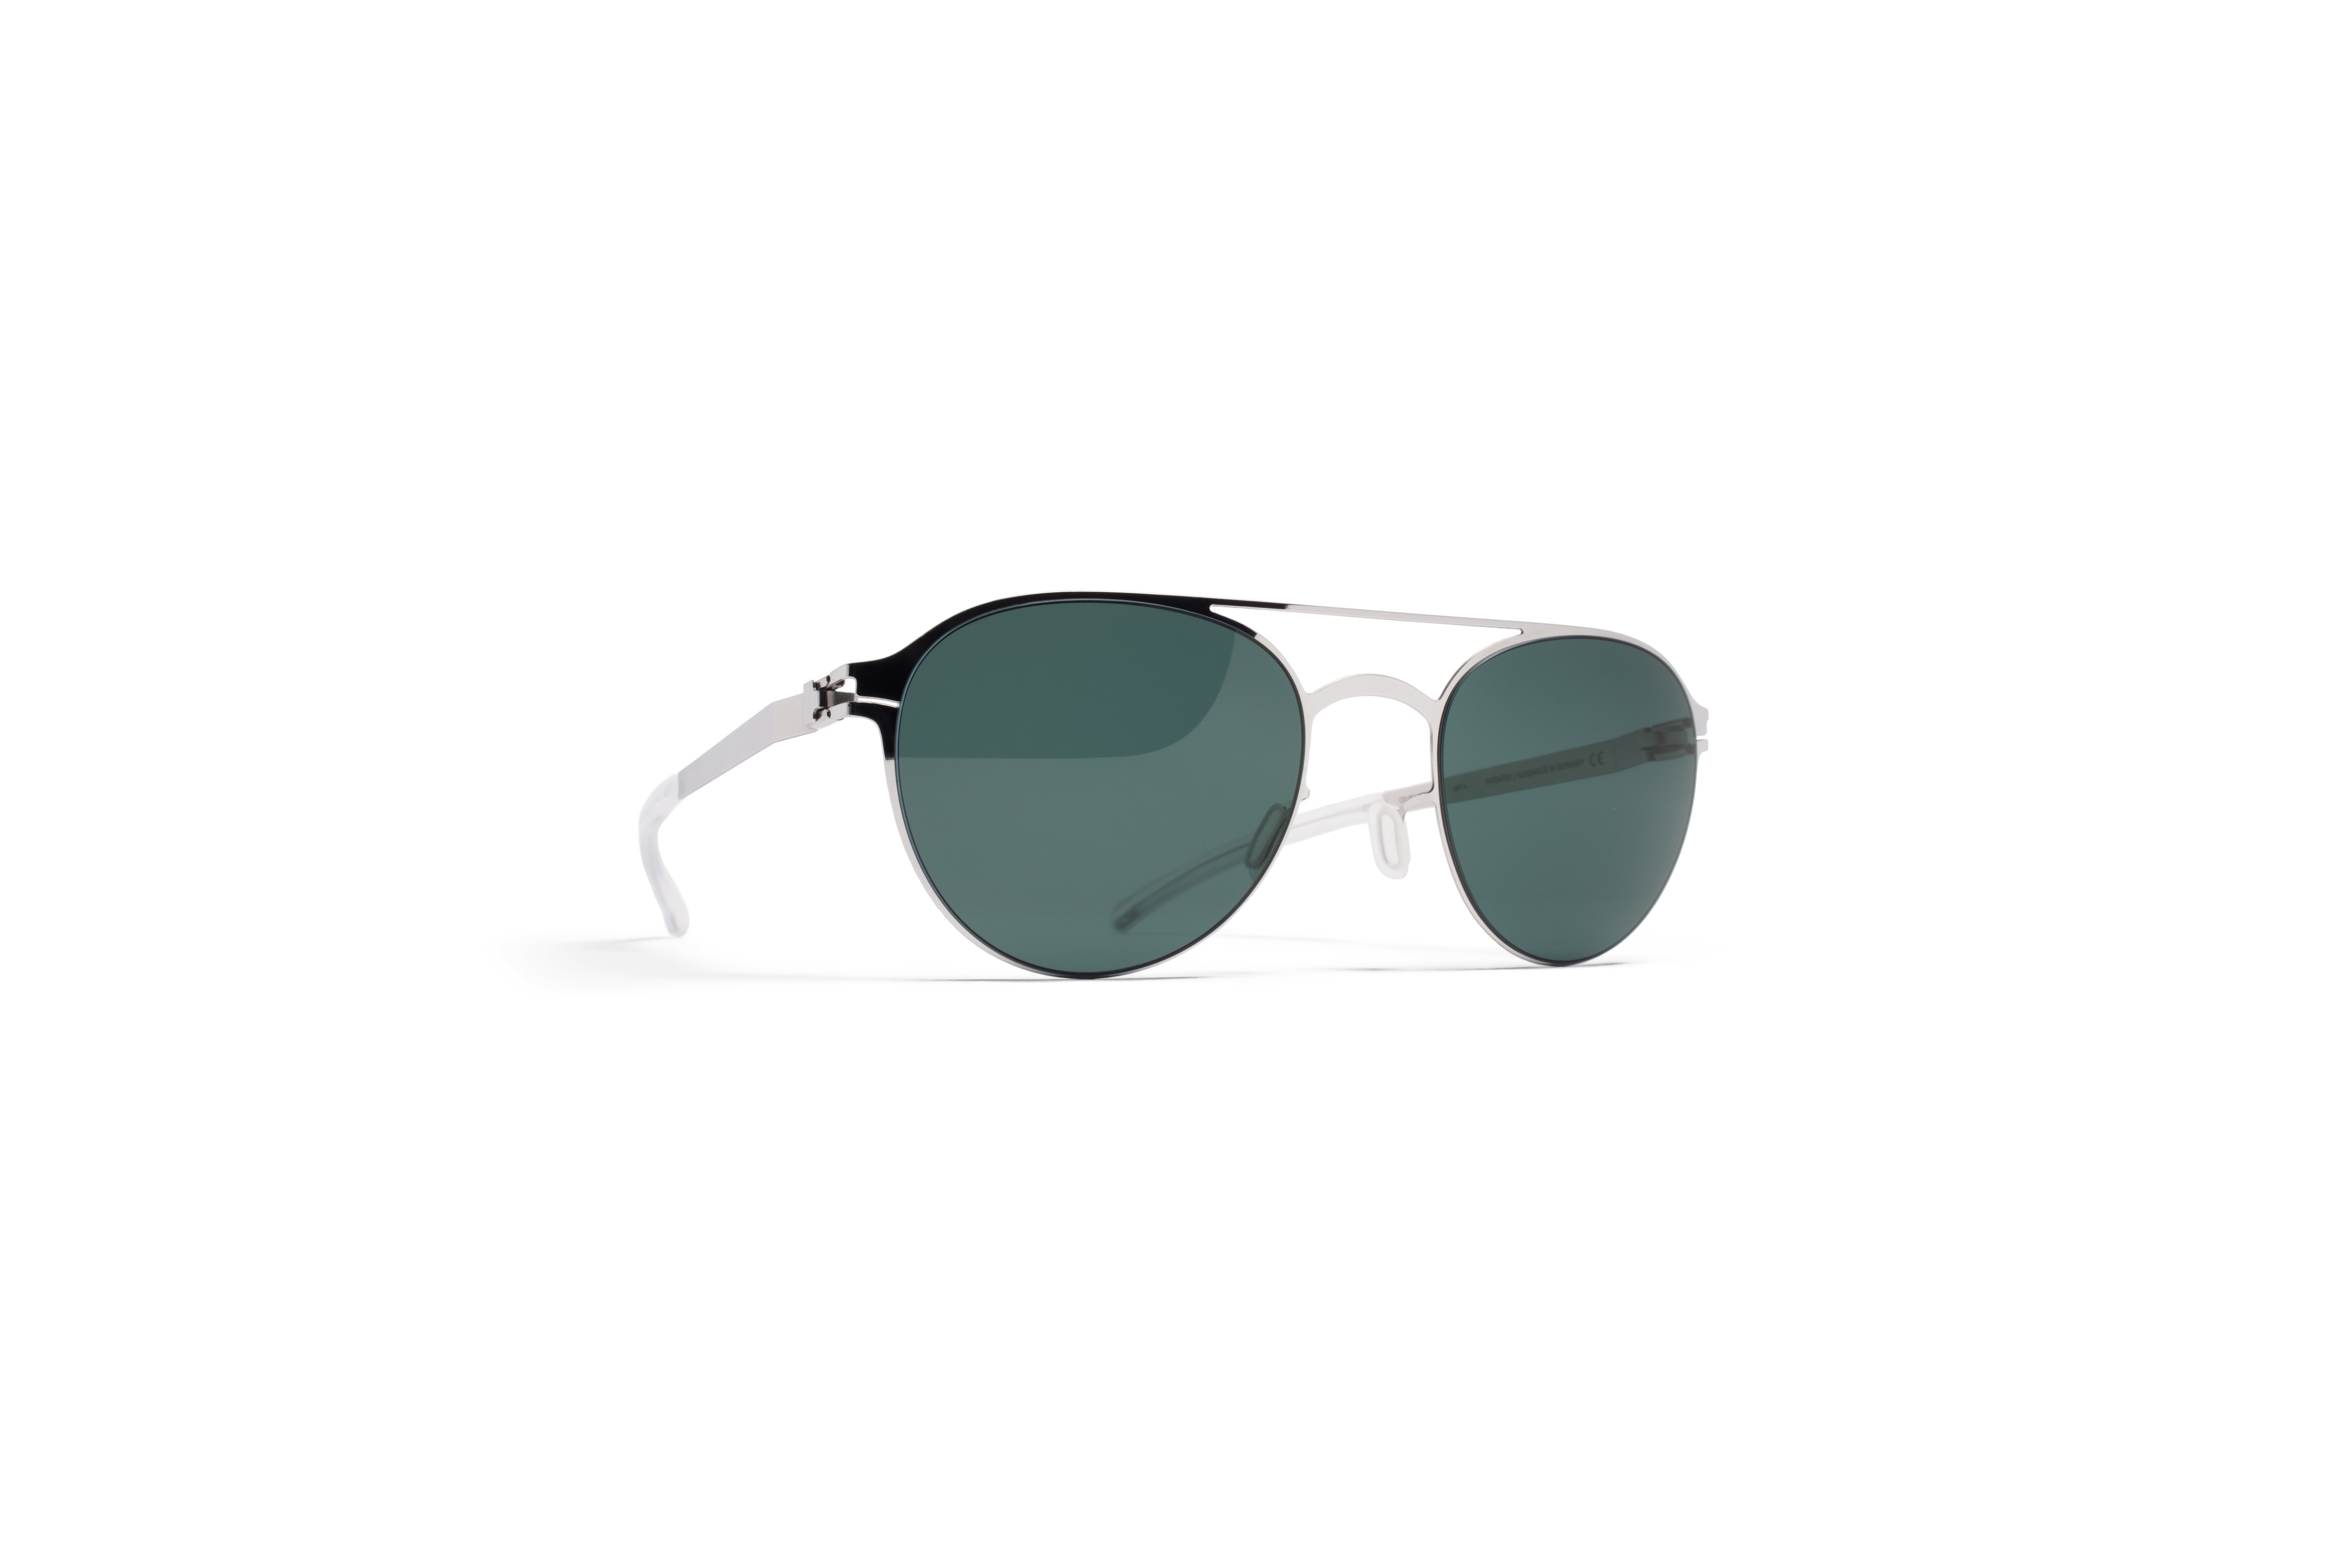 MYKITA No1 Sun Reginald Shinysilver Neophan Polari